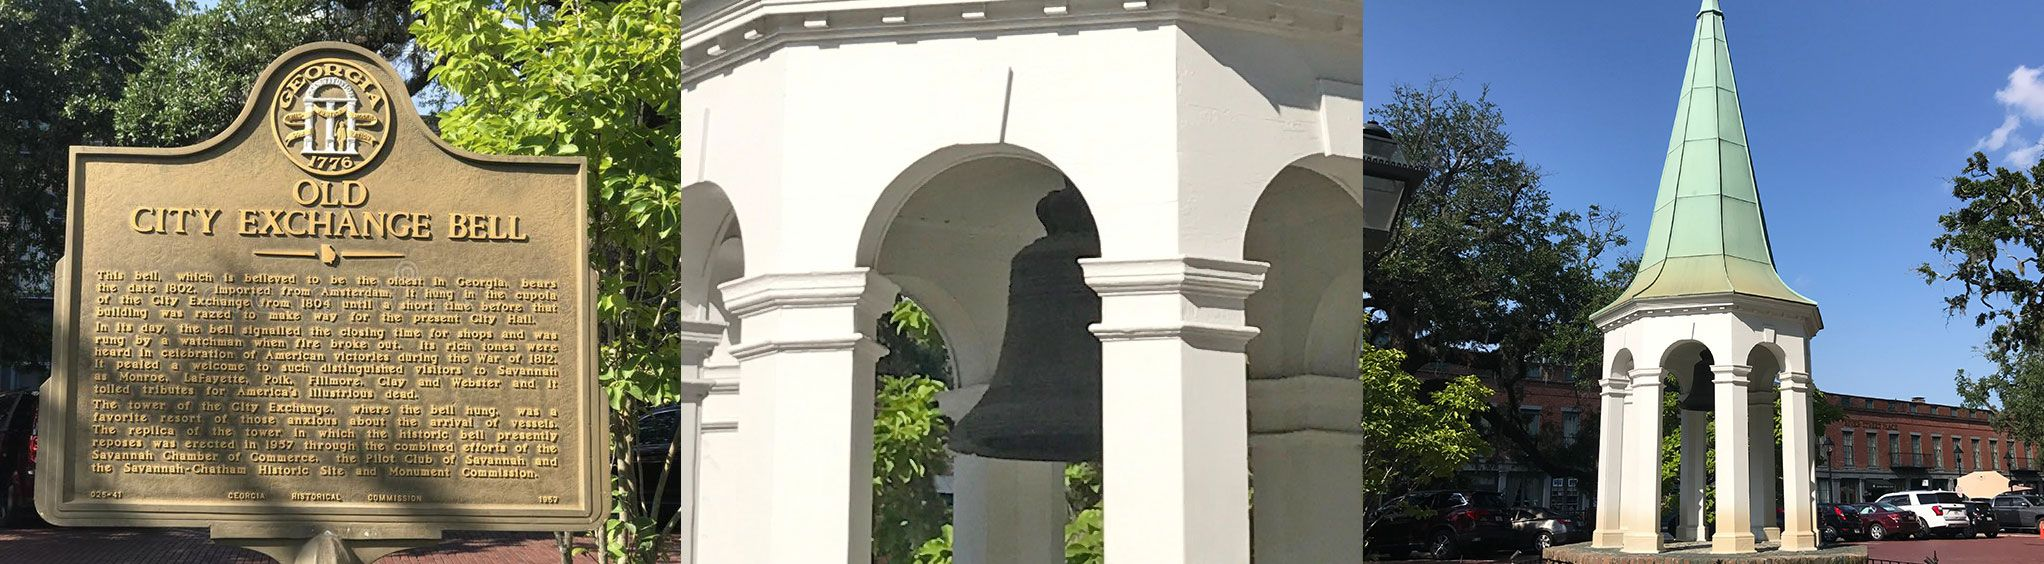 Old City Exchange Bell